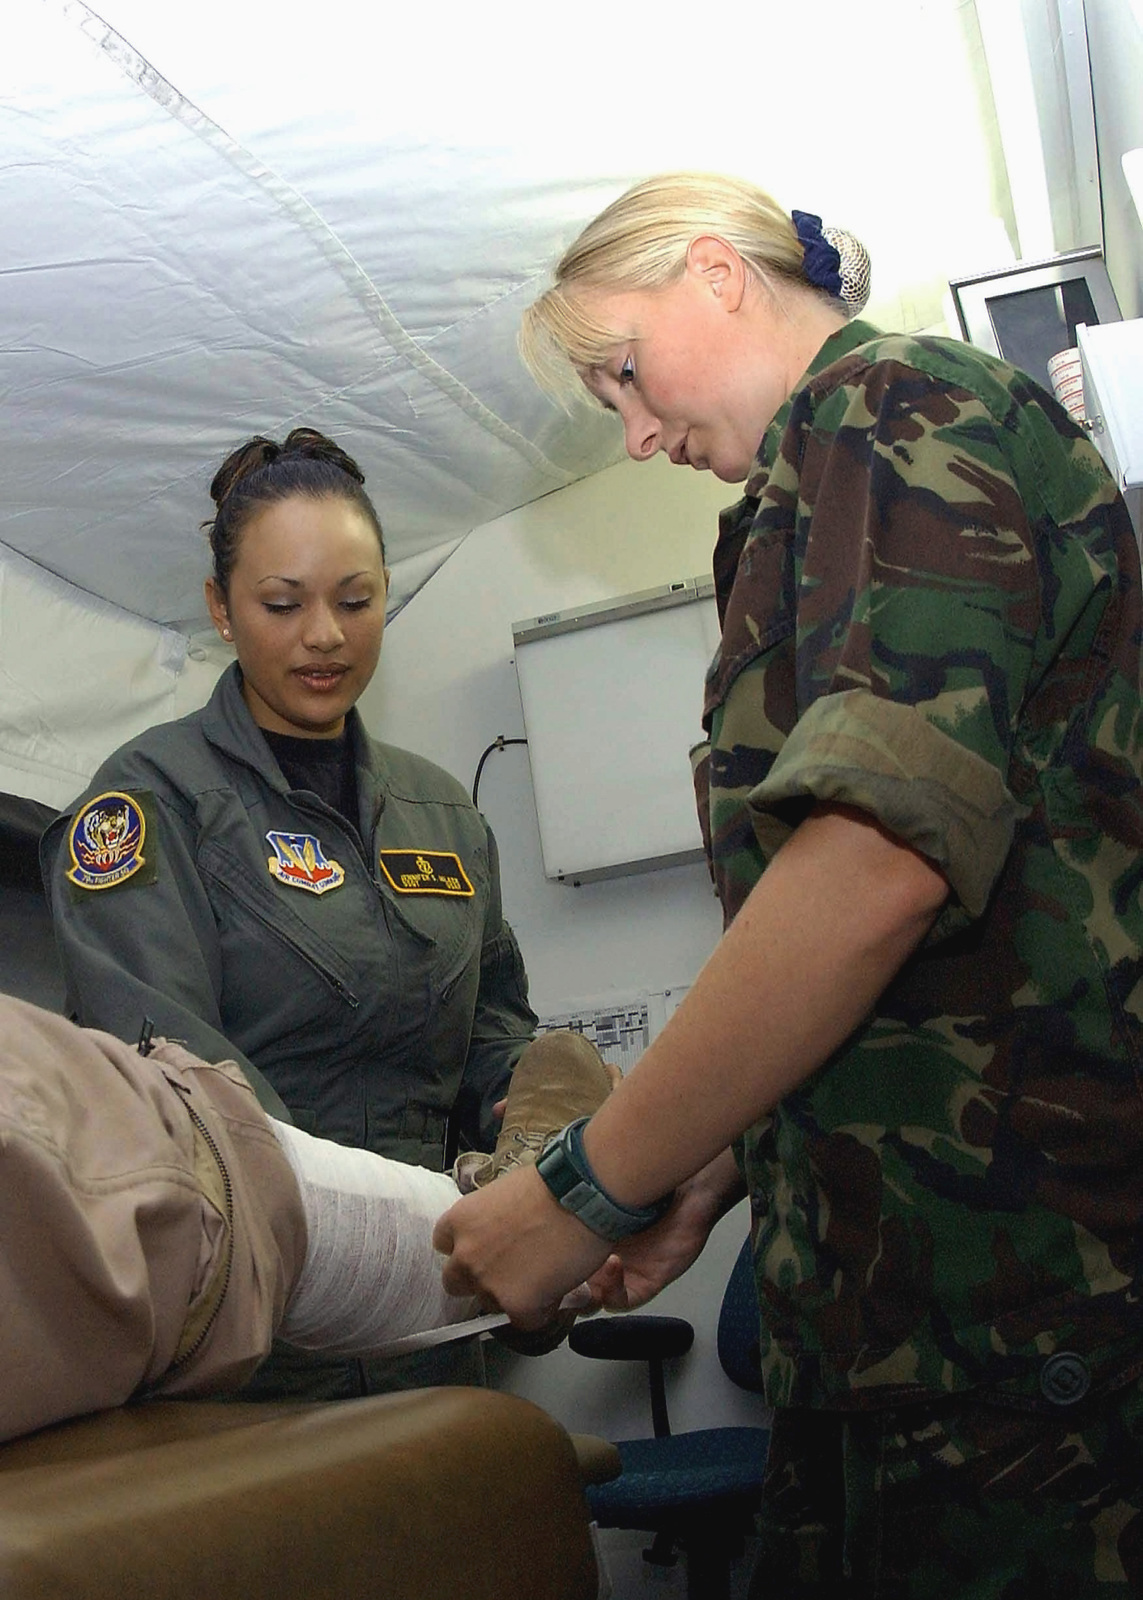 US Air Force (USAF) STAFF Sergeant (SSGT) Jennifer Hilker (left), Medical Technician, deployed with the 78th Expeditionary Fighter Squadron (EFS), and British (UK), Royal Air Force (RAF), Sergeant (SGT) Kelly Purdie, dresses a patient's leg wound inside the medical clinic in tent city at Incirlik Air Base, Turkey, while deployed in support of Combined Task Force, Operation NORTHERN WATCH